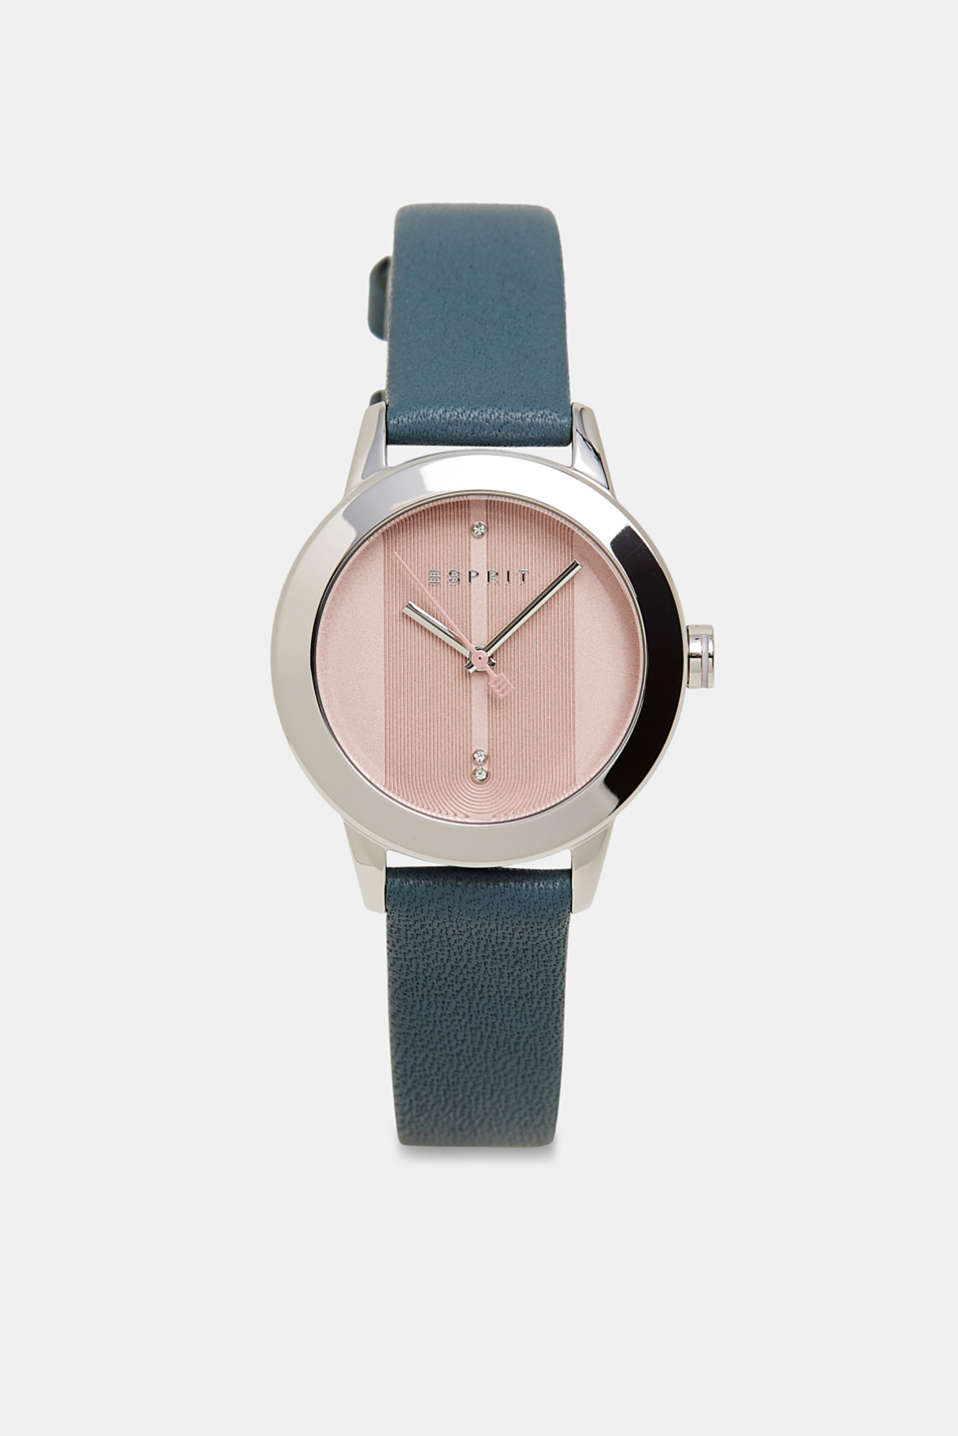 Esprit - Stainless steel watch with zirconia and leather strap